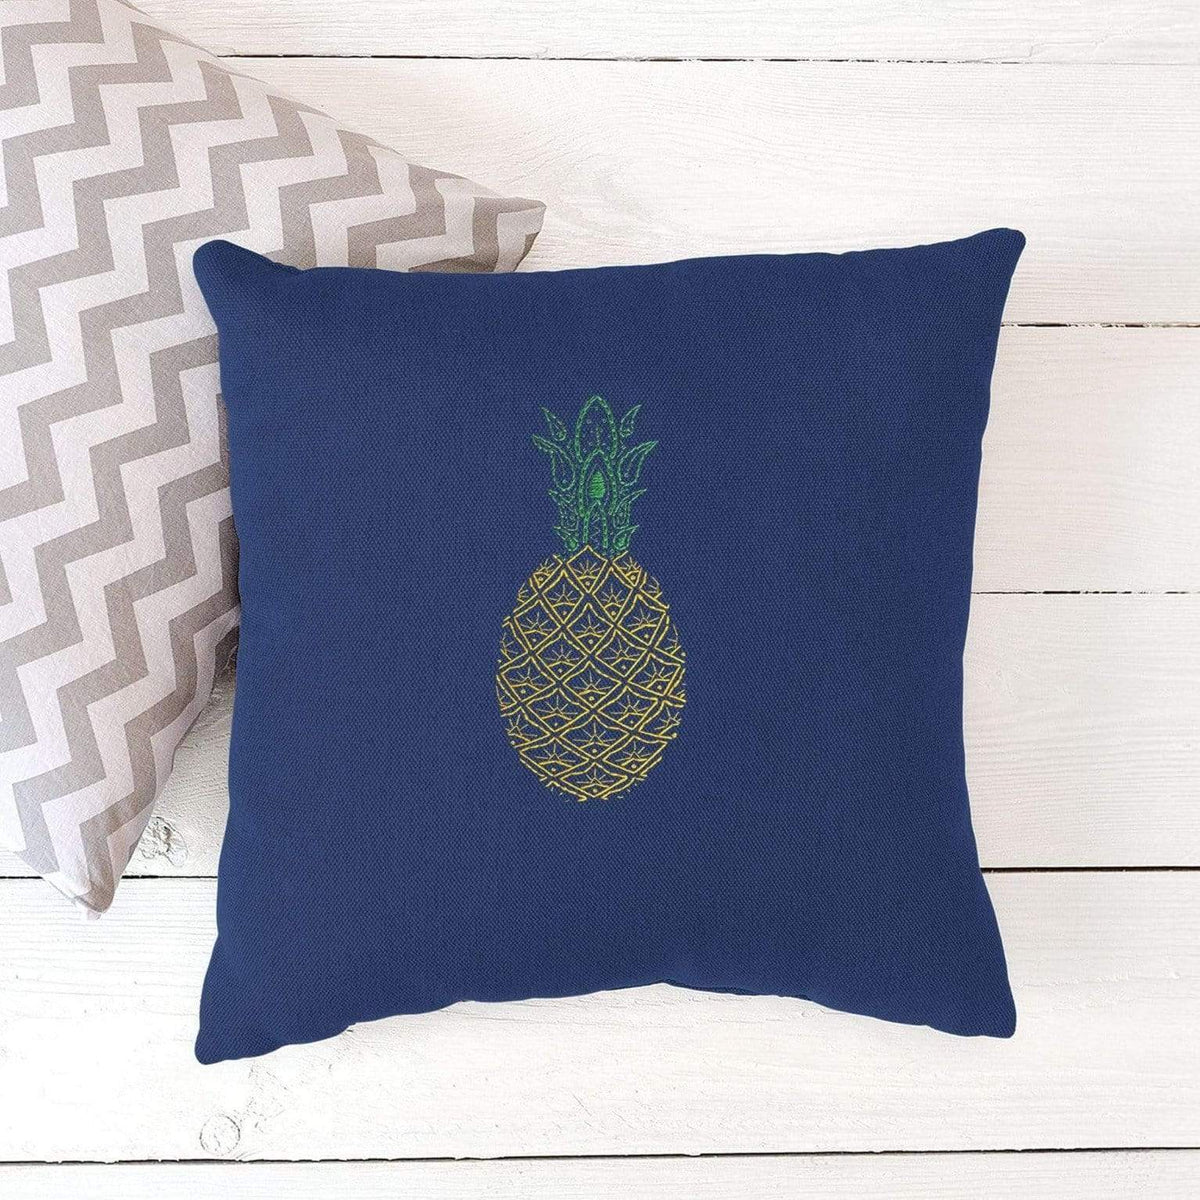 Paraffle Embroidery Cushion Embroidery Kit Pineapple Cushion Kit & Pattern